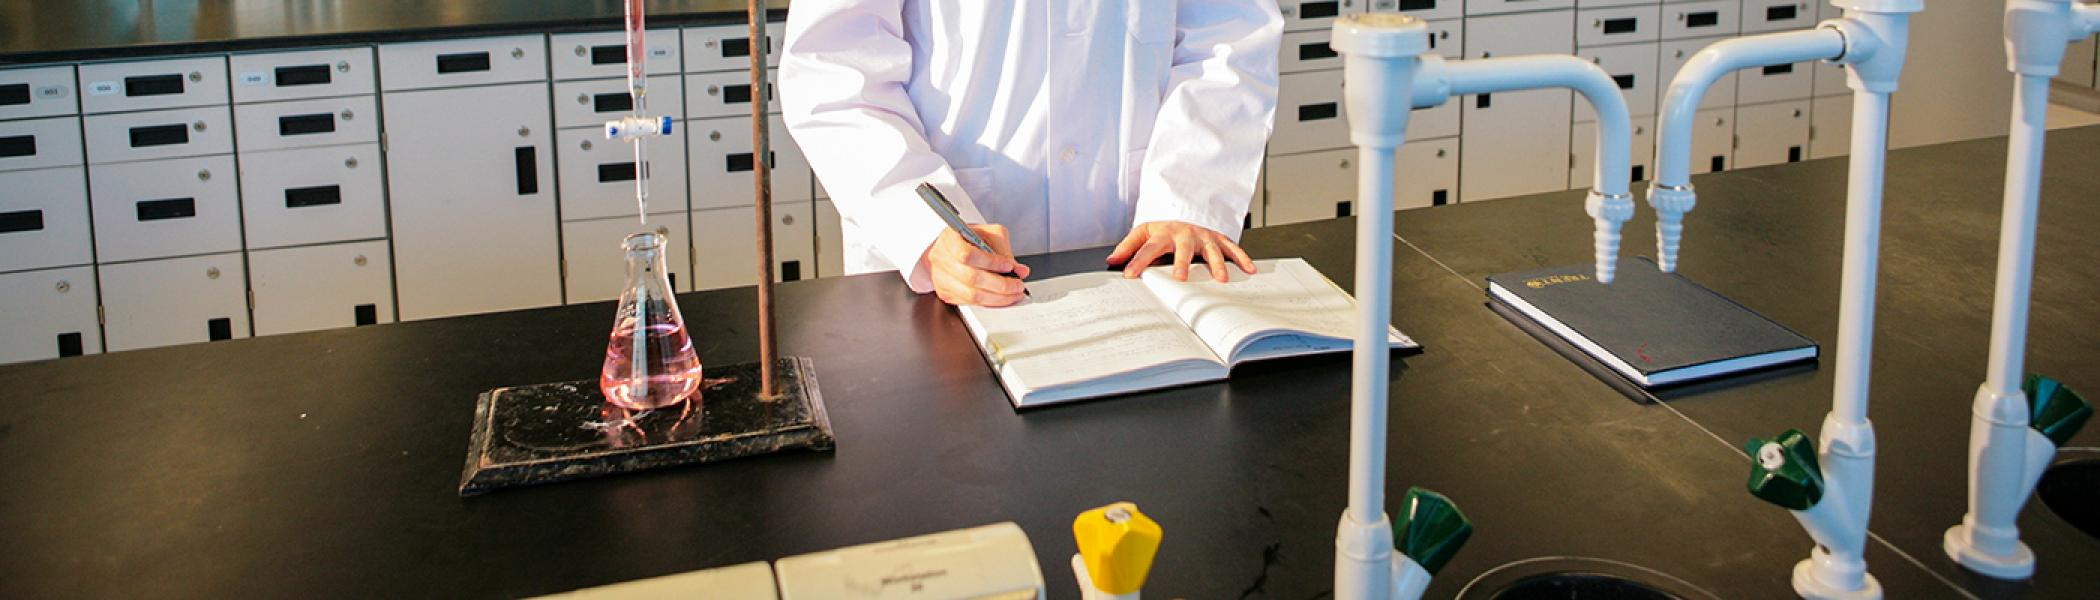 Close-up of a pair of hands writing in a lab notebook on a chemistry lab bench in front of an Erlenmeyer flask with pink liquid in it